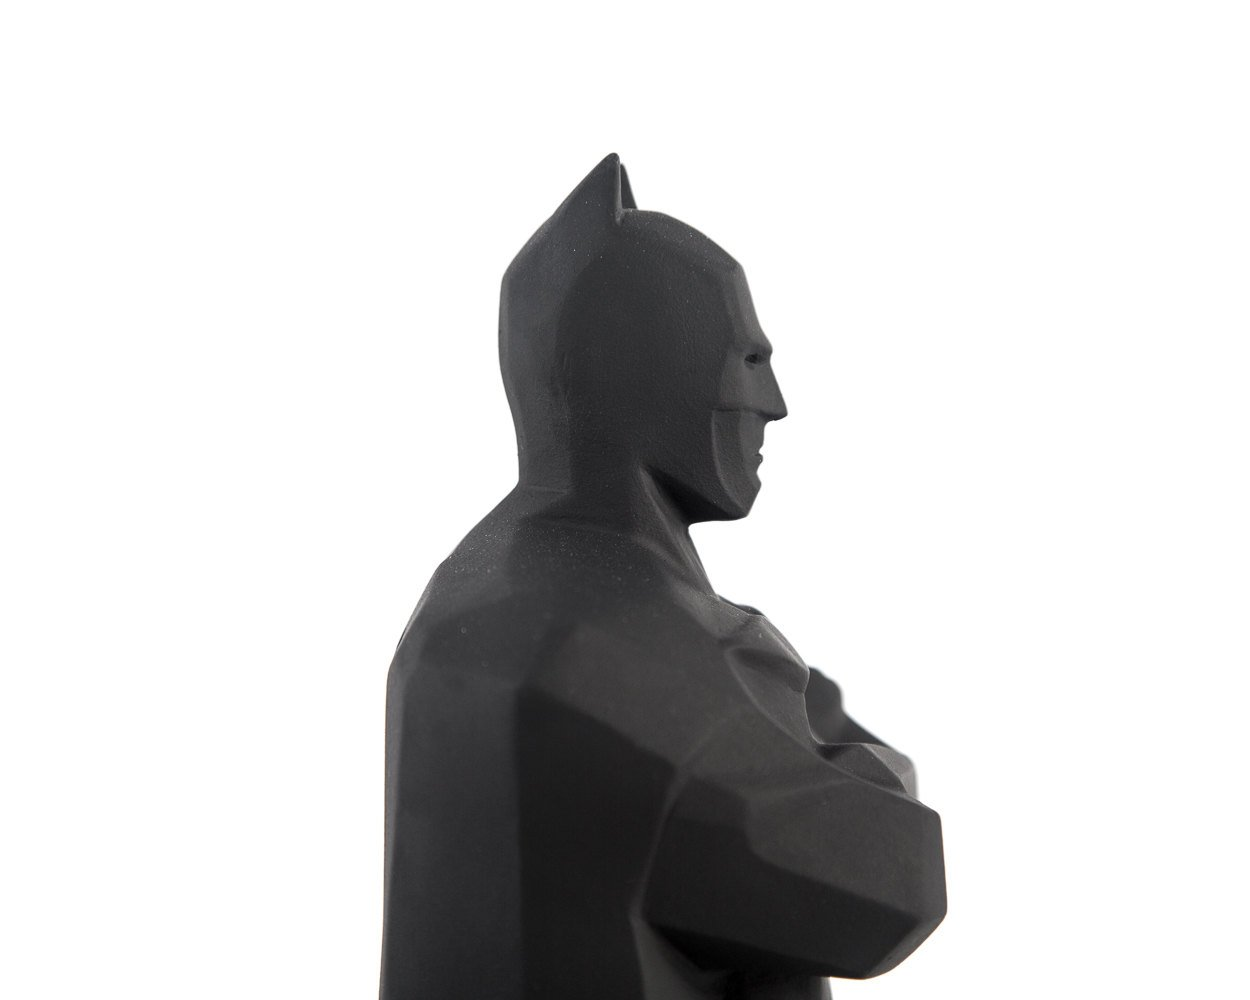 Batman Statue // Geometric decor for modern home // Free shipping // Dark knight decor Gotham city // Comics hero // geek present